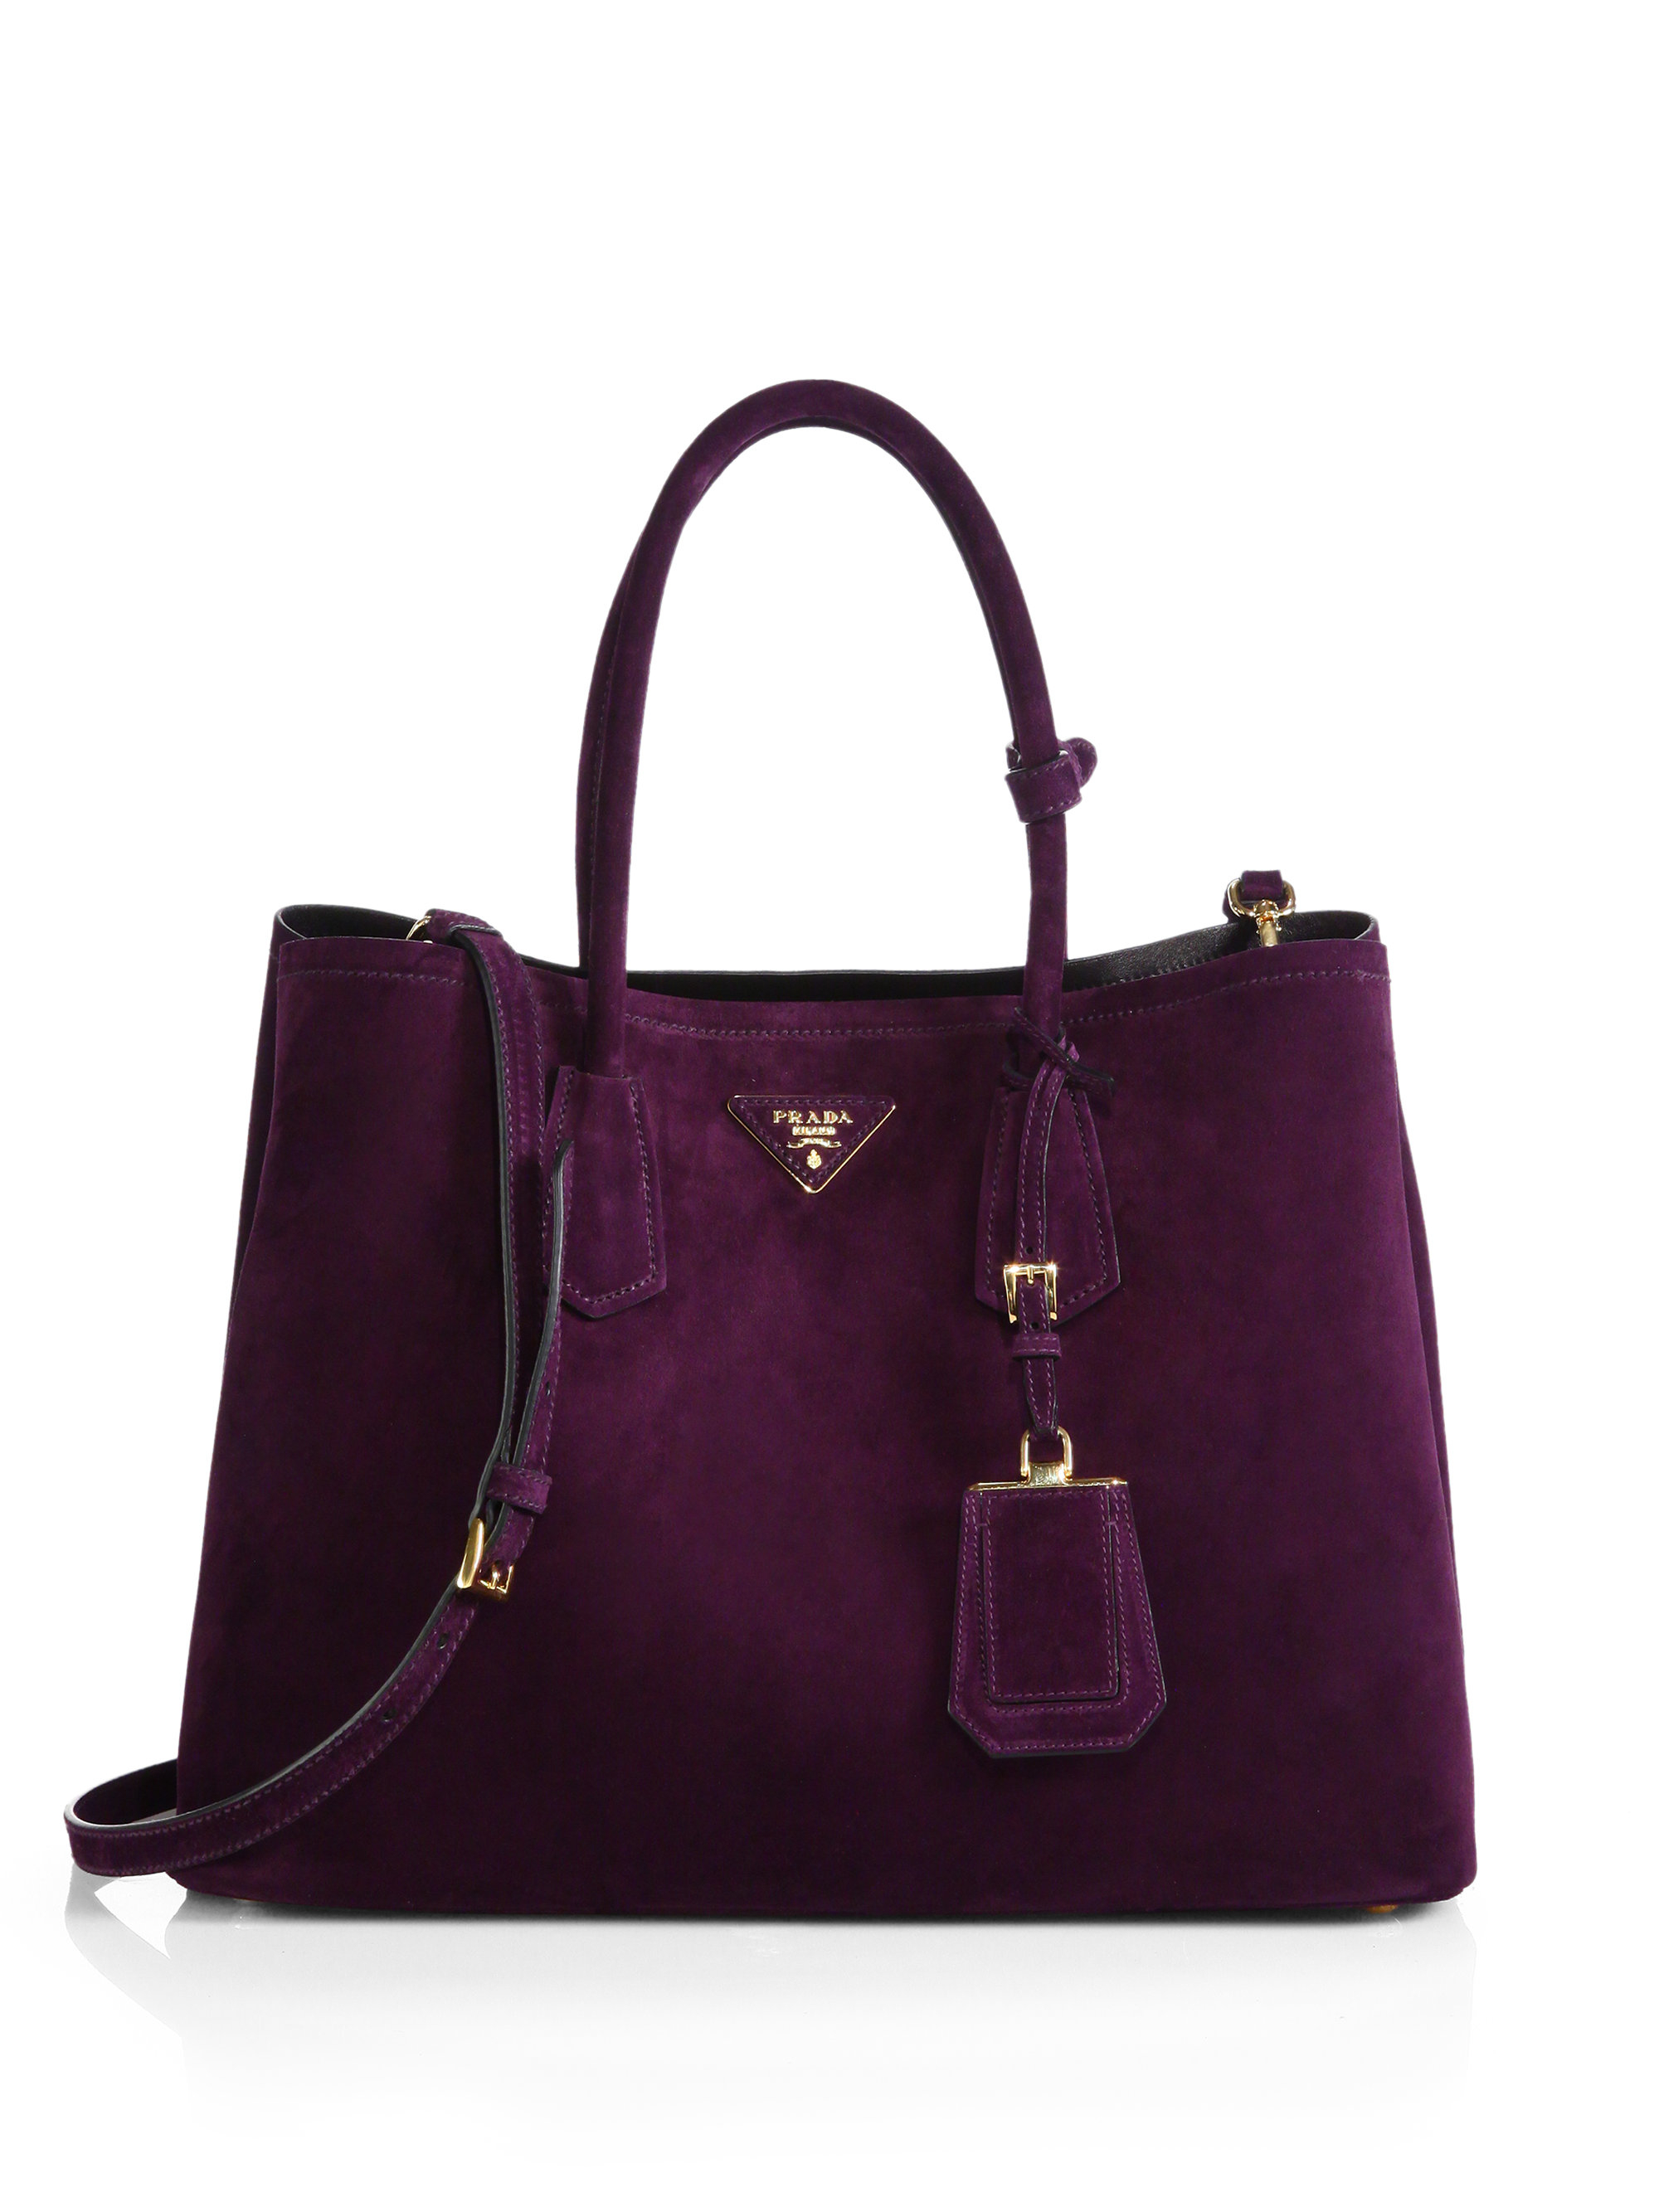 Genuine Dark Leather Bag Nico Women's Casual Suede Purse Handbag Purple Tote Shoulder e7PvTHLE8ae Czy myślałeś o wyrzutach sumienia, o poczuciu winy jakie spowodujesz? English It may not succeed, but it is an important gesture to show the world's disgust at the horrors he has perpetrated in Darfur without any remorse.